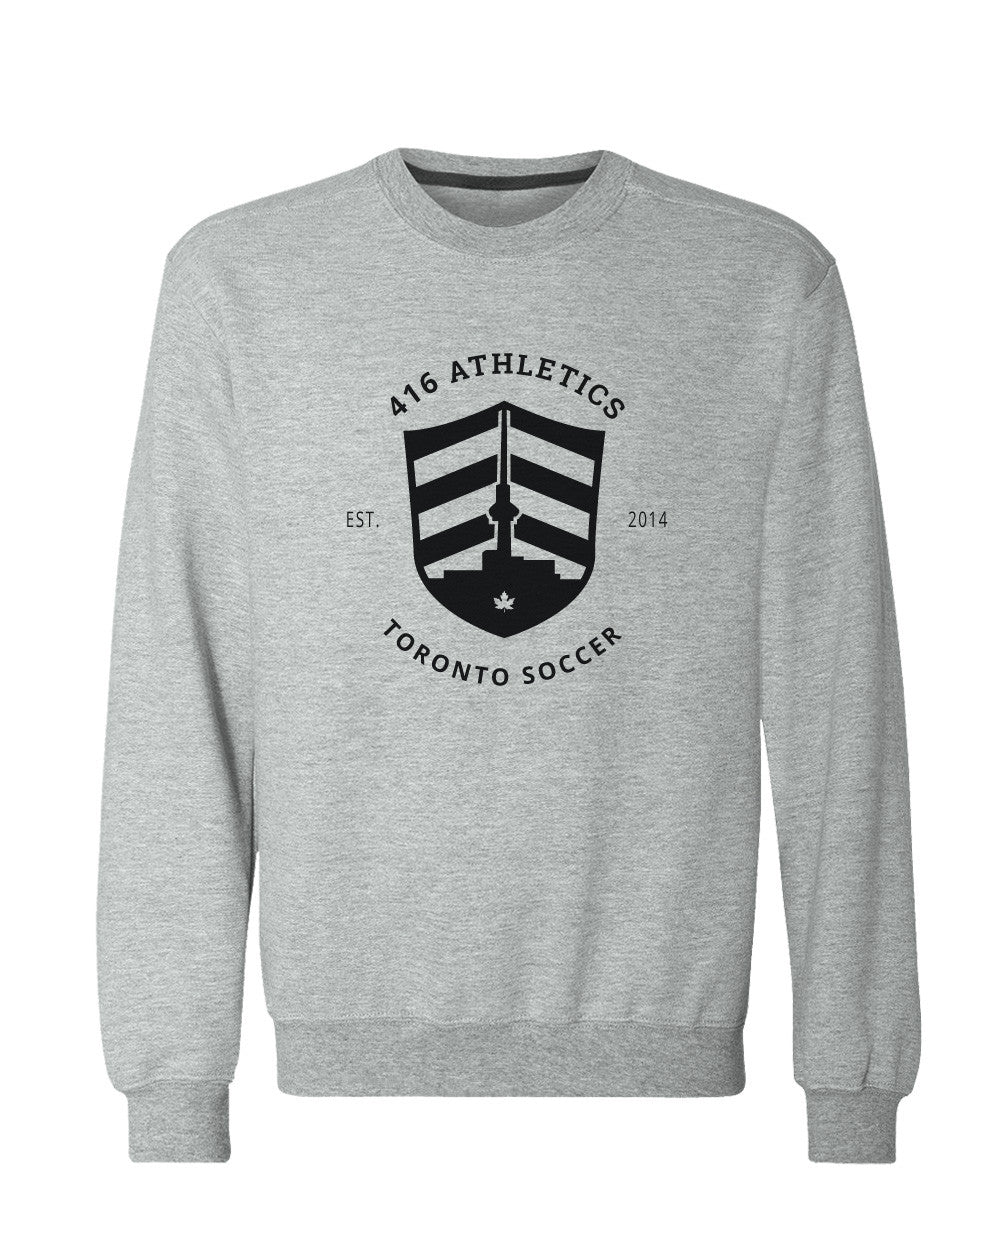 416 Athletics | Grey Crew